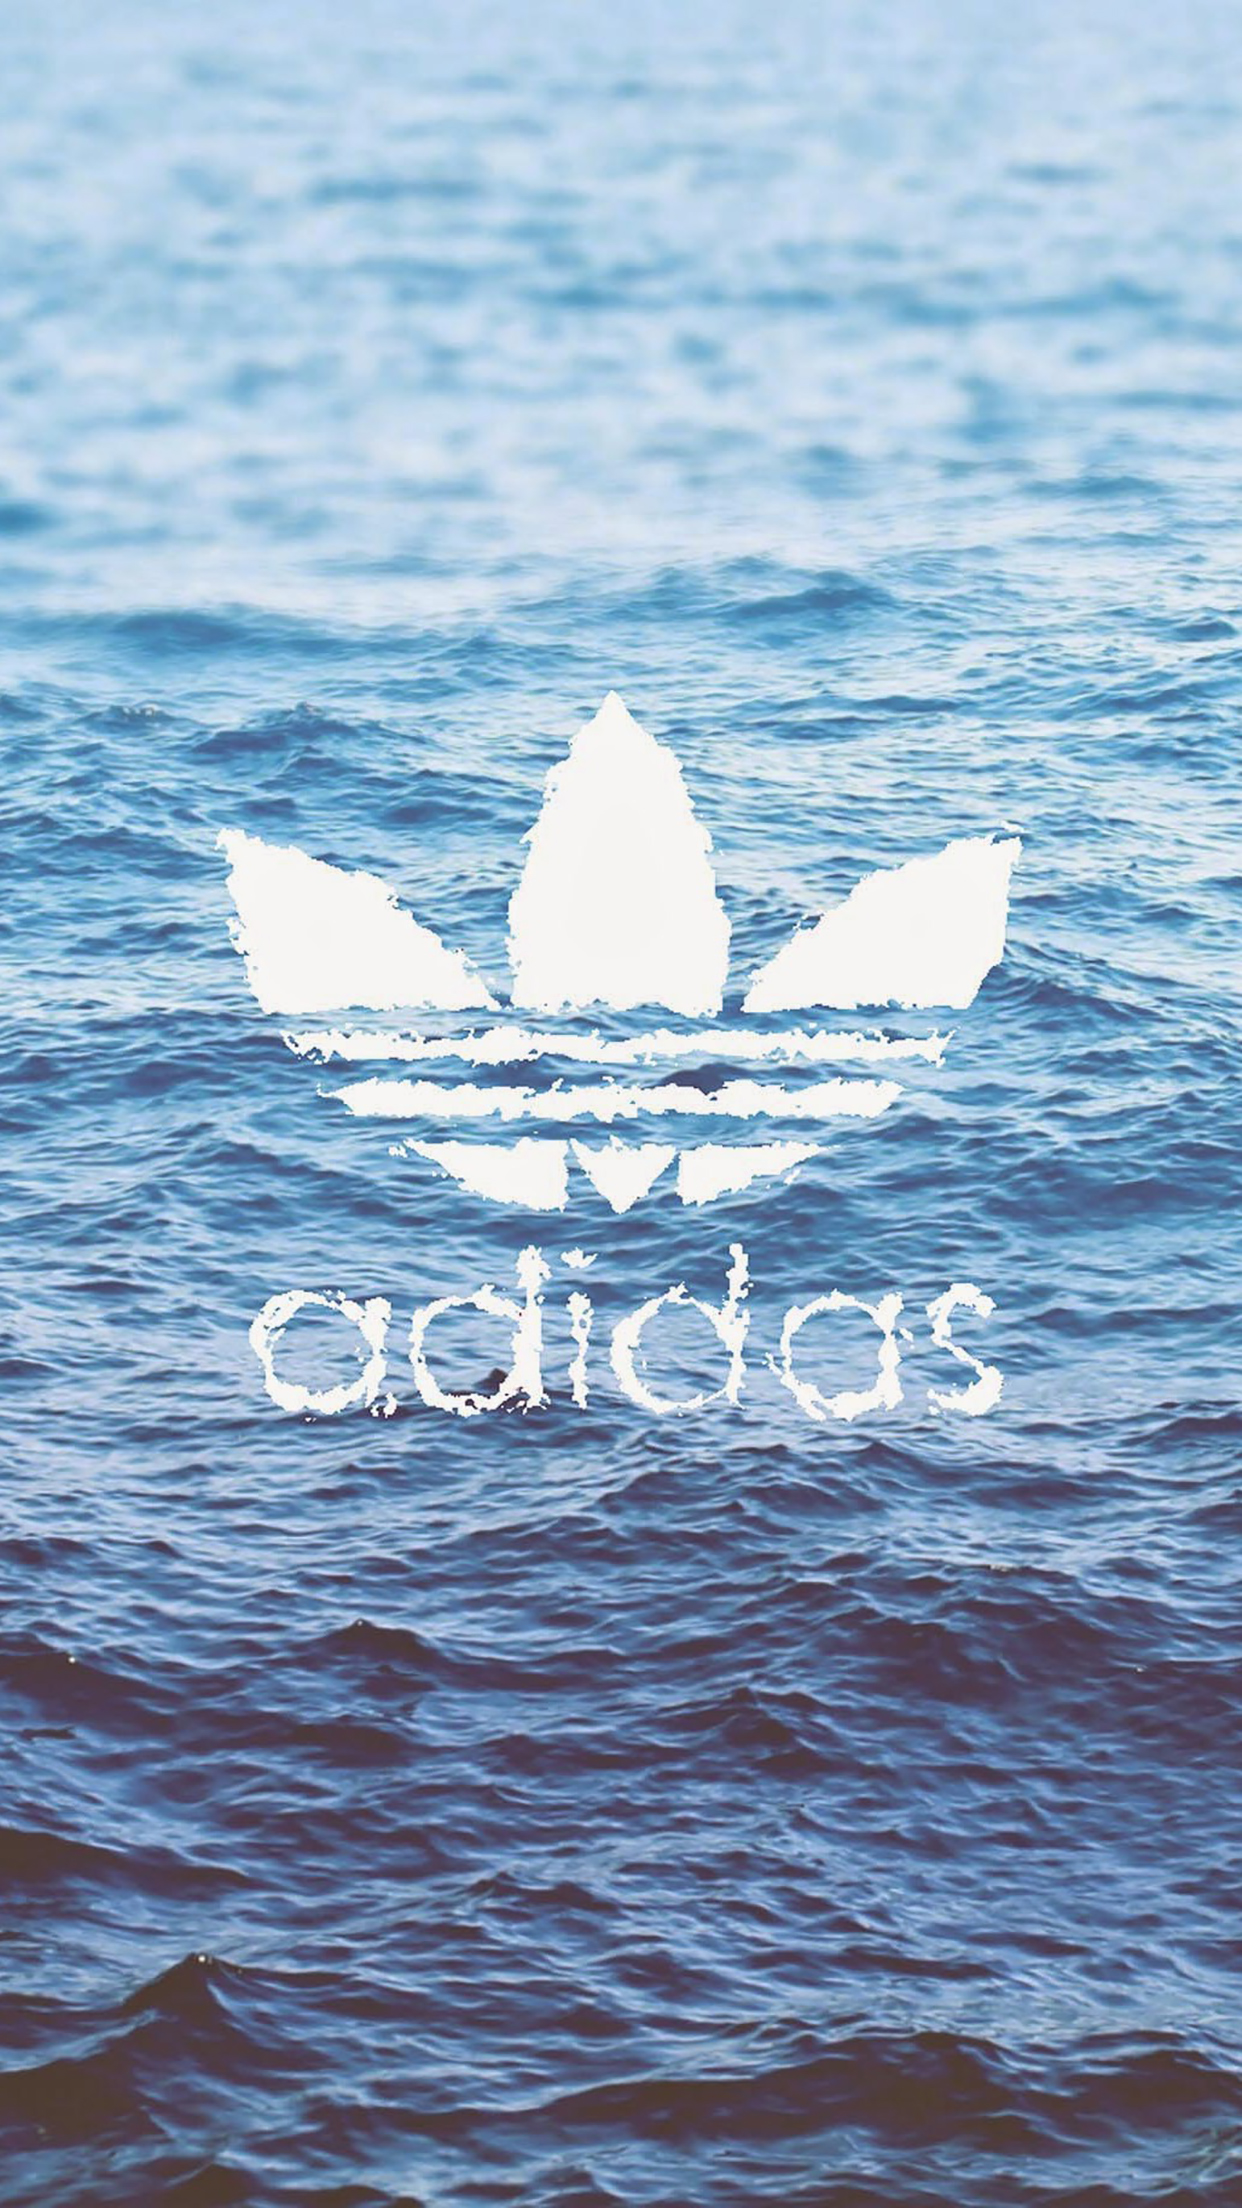 Adidas logo on water 3Wallpapers iPhone Parallax Adidas logo on water